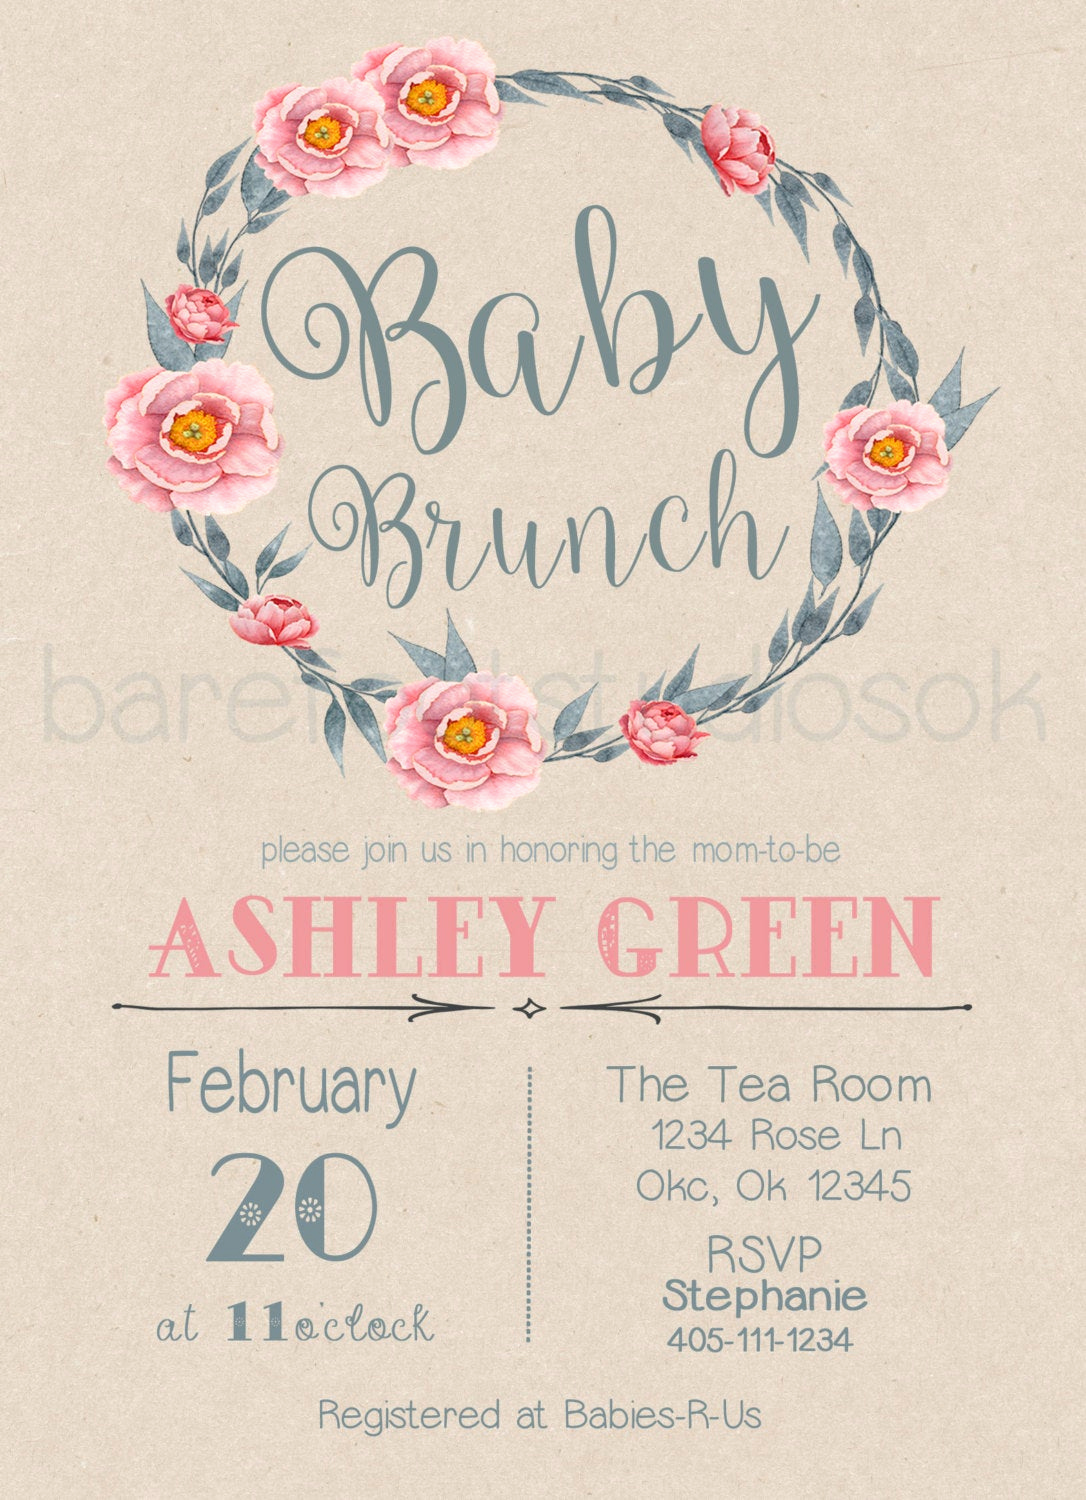 Baby Shower Brunch Invitation New Baby Brunch Invitation Baby Shower Invitation Brunch